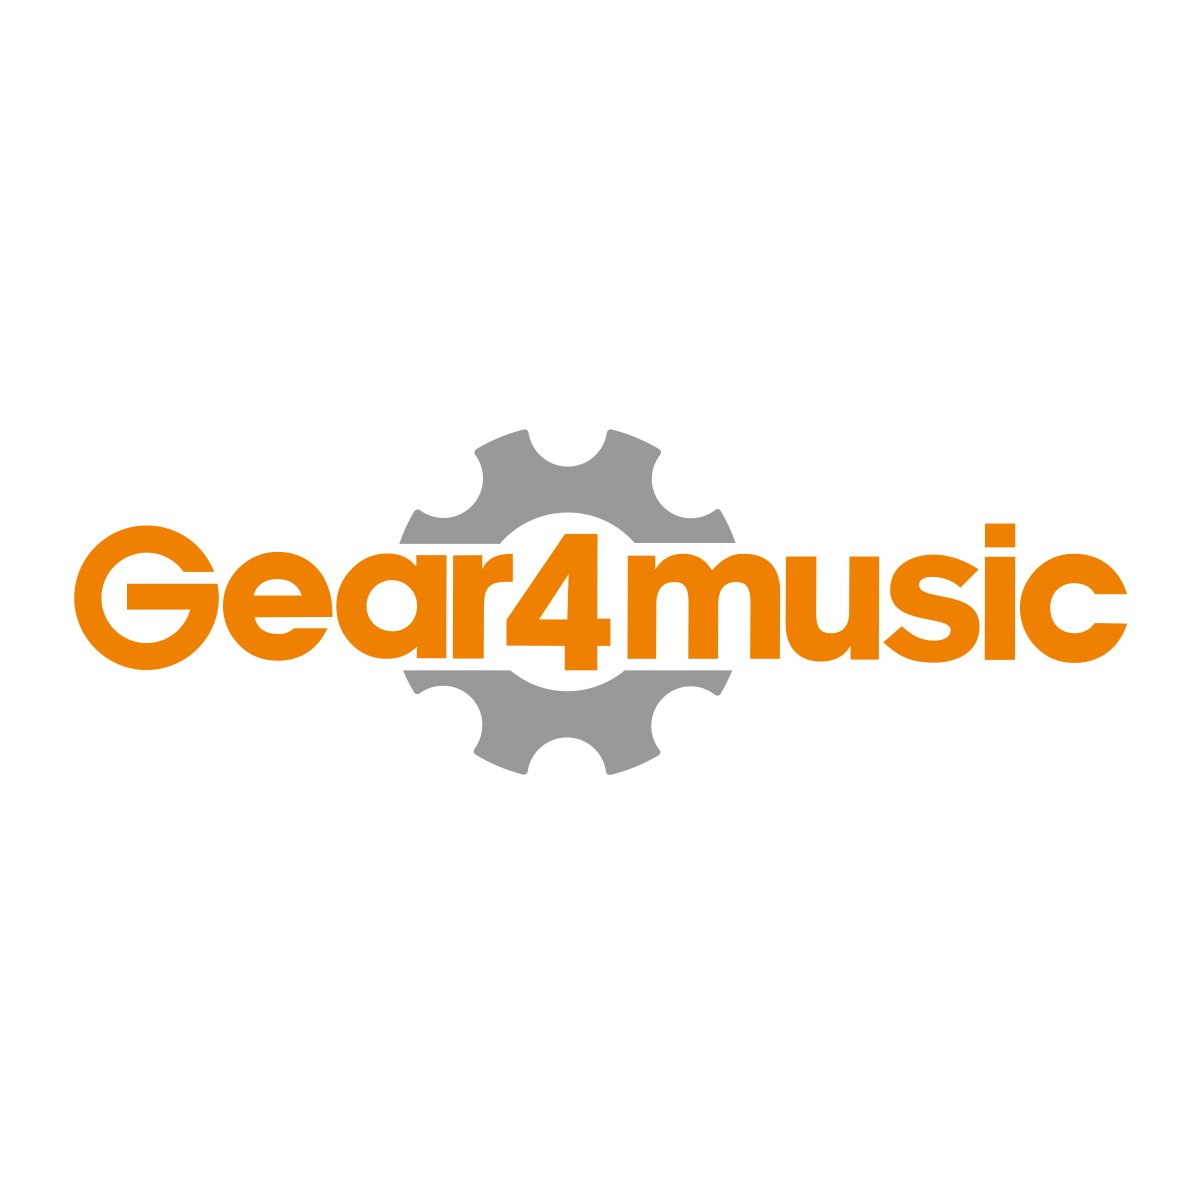 Piccolo étudiant par Gear4music